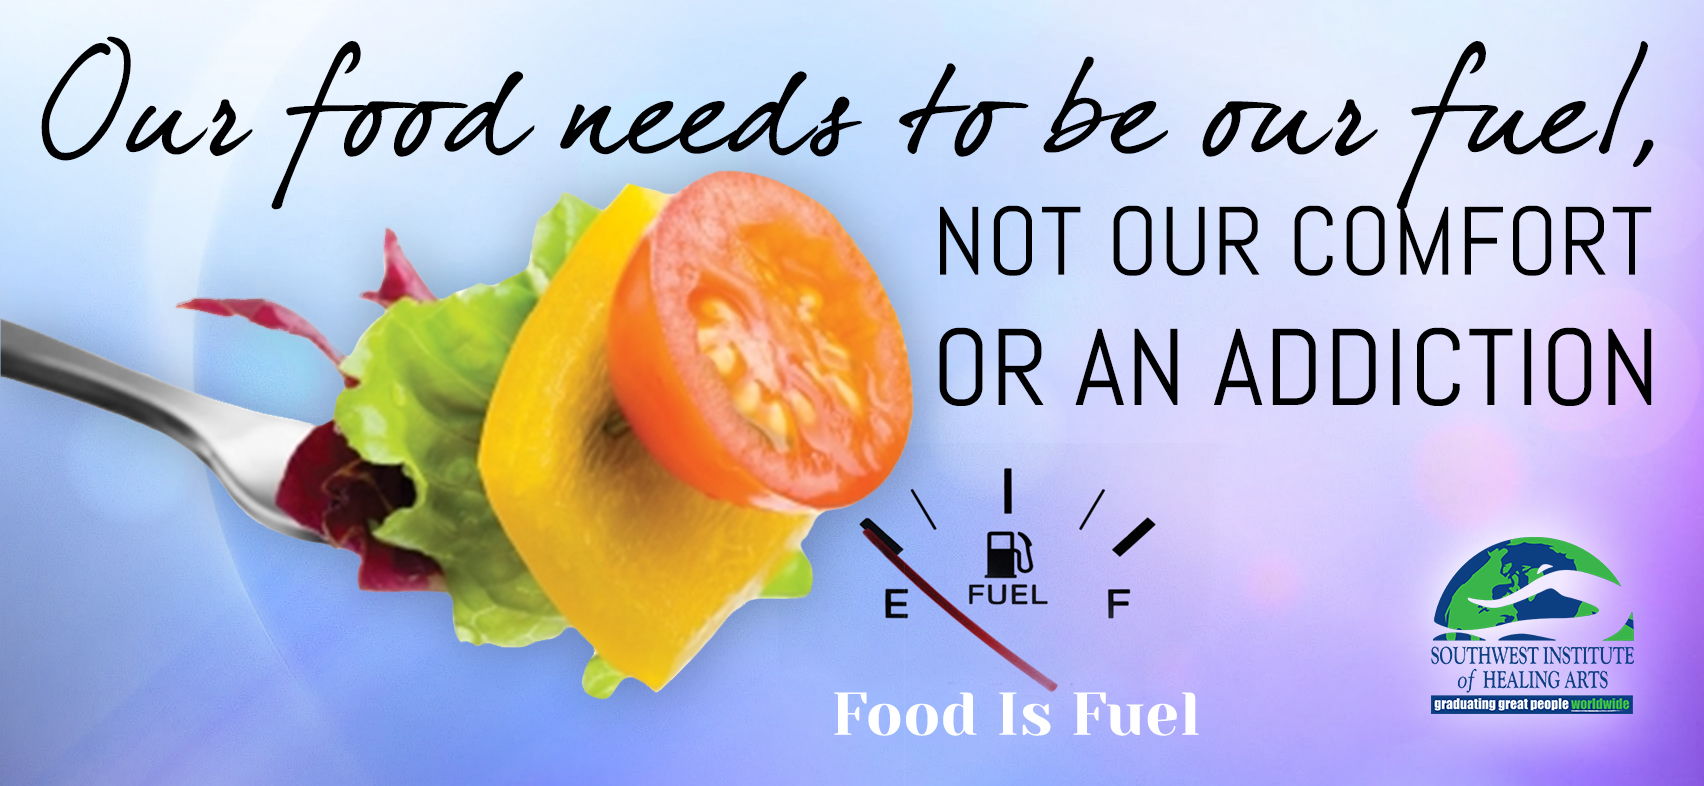 Food is Fuel - Nutritional Food For Thought